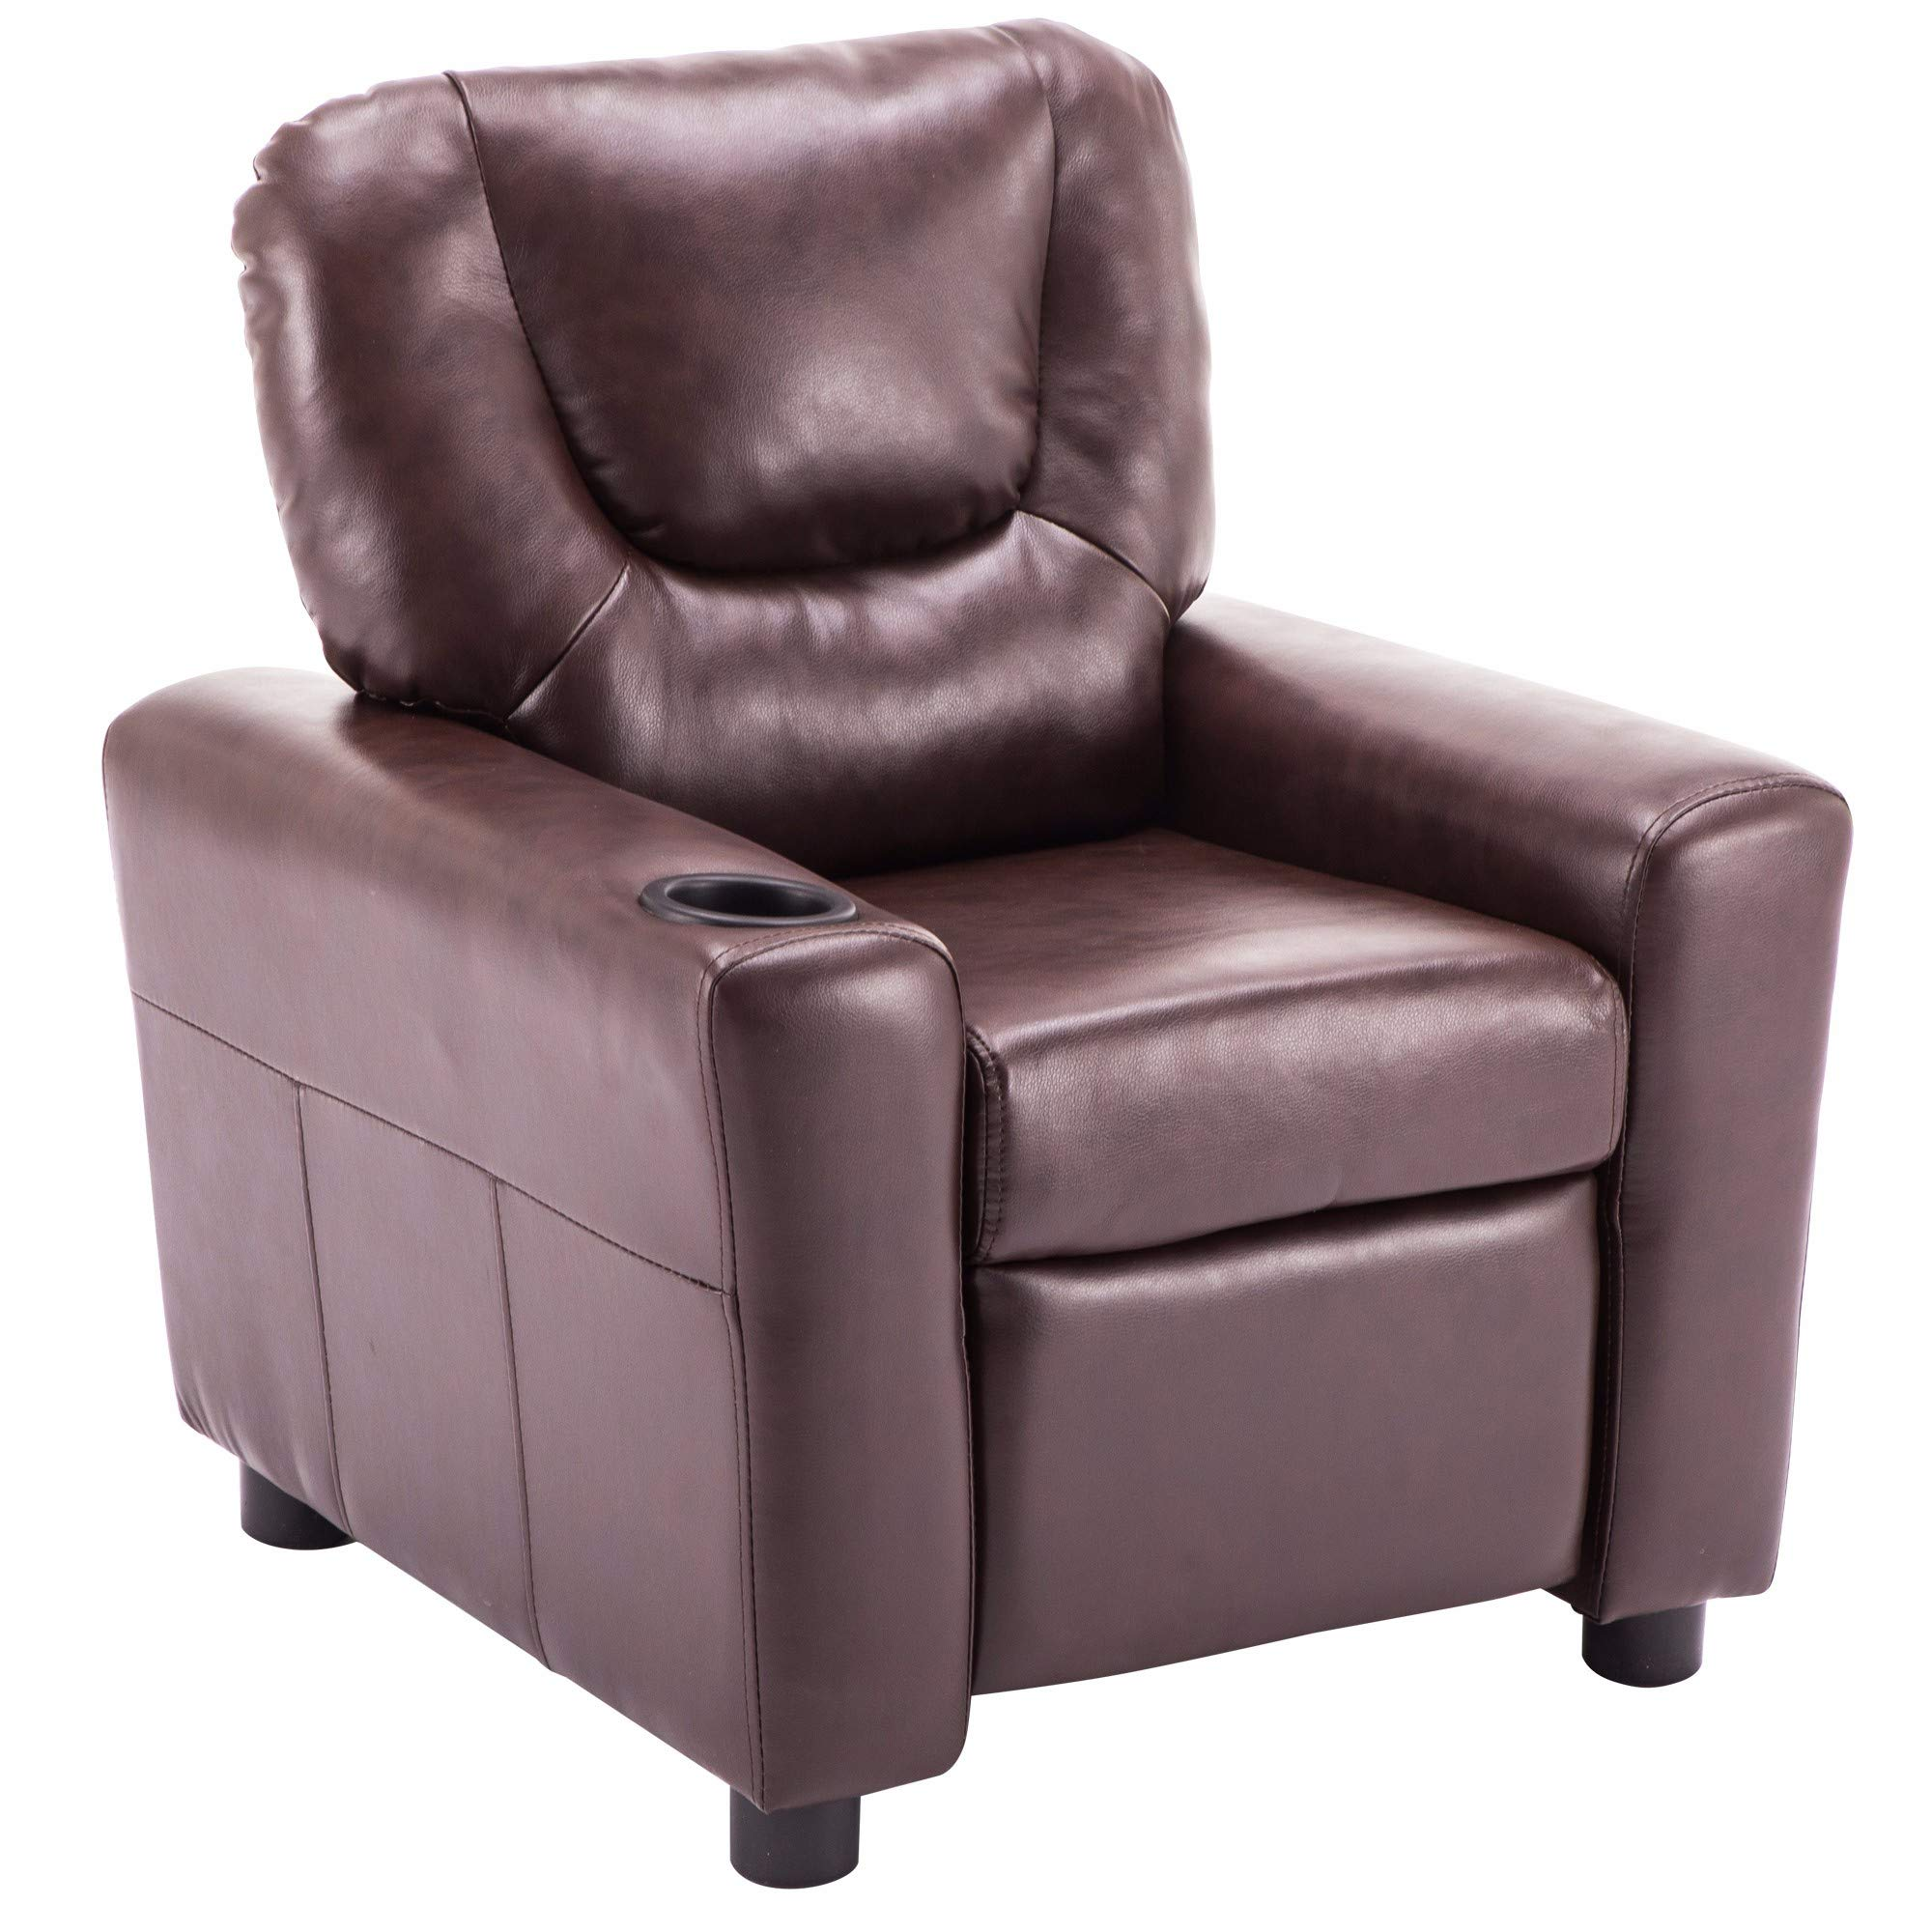 MCombo Kids Recliner Armchair Children's Furniture Sofa Seat Couch Chair w/Cup Holder 7240 (Dark Brown) by MCombo